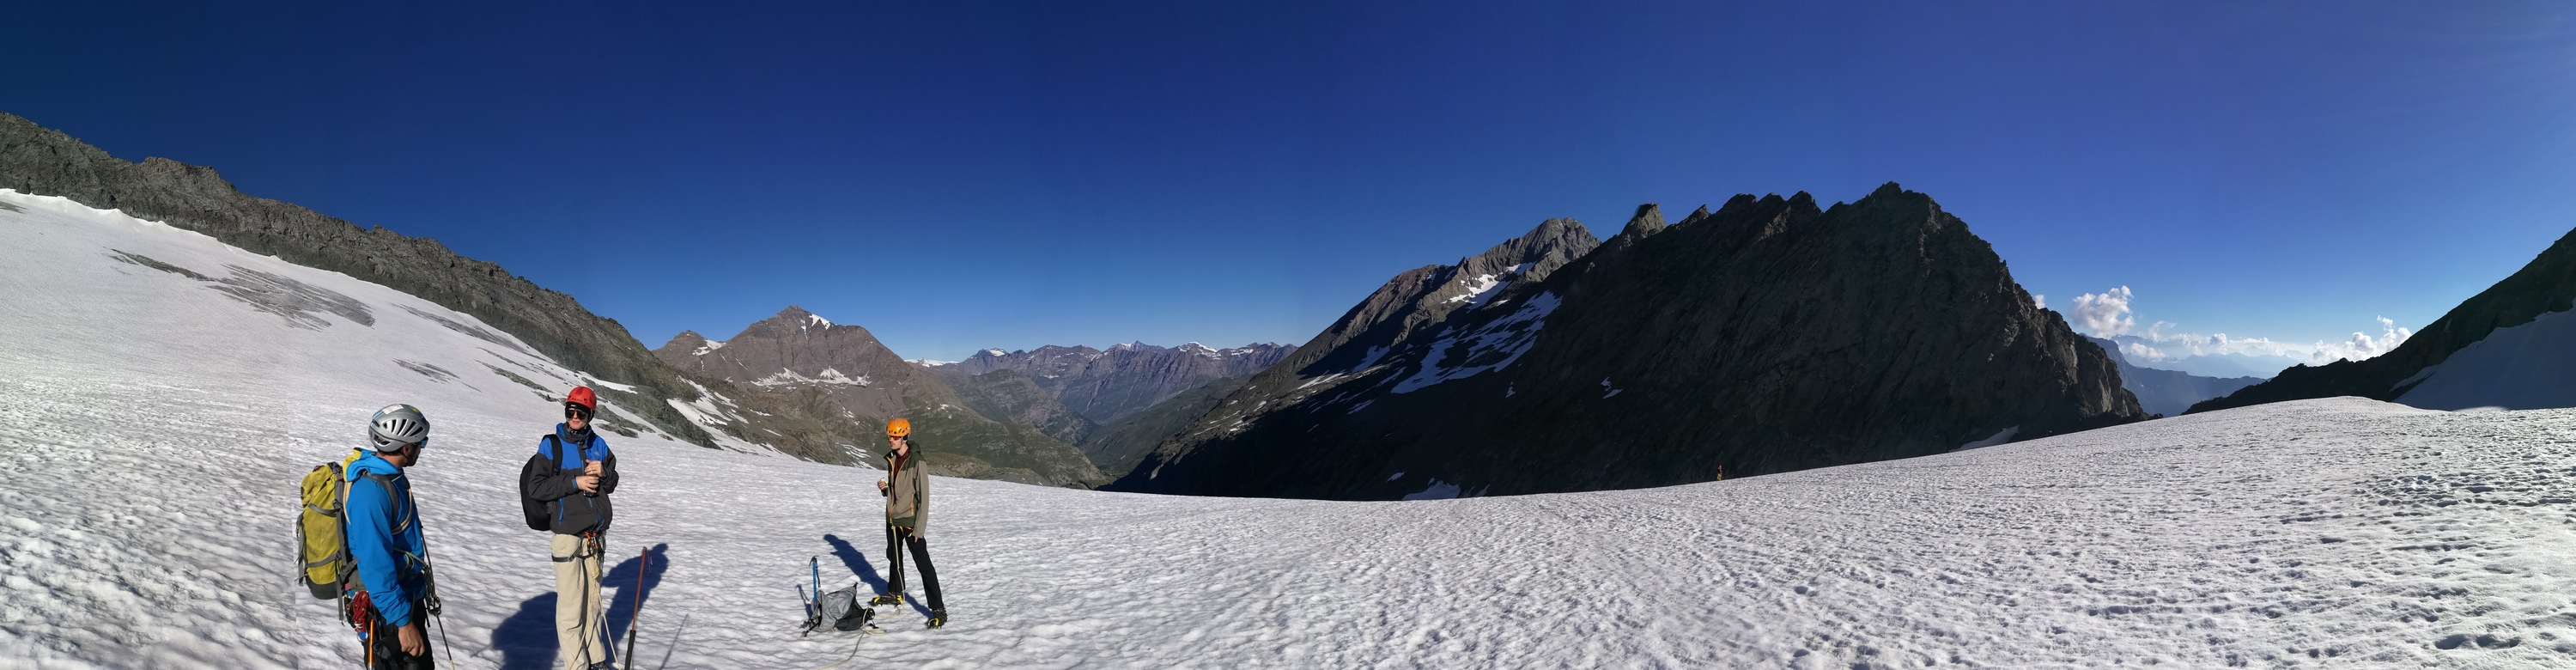 The view from on top of the glacier.